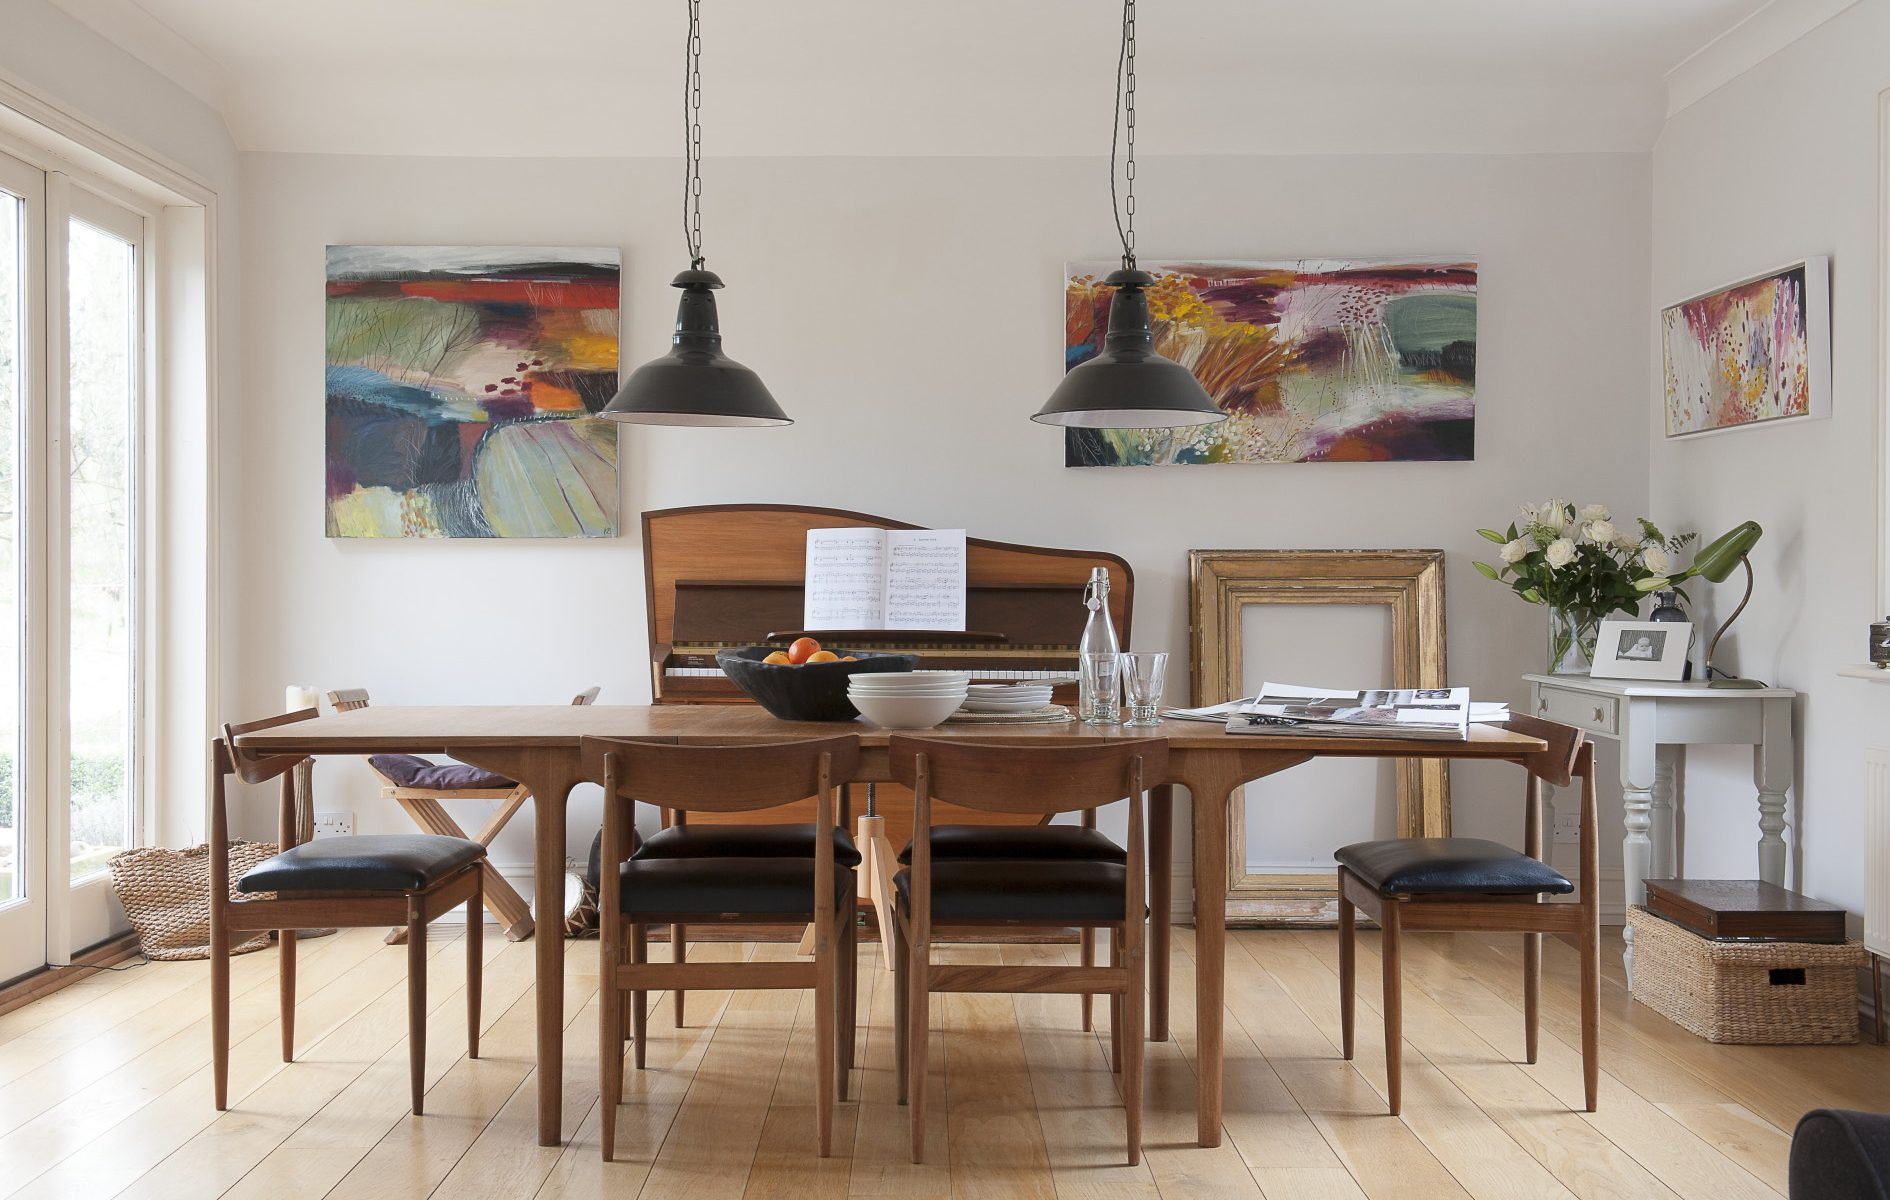 In the dining room, pride of place goes to the 1960s in the shape of a slim and elegant dining table over which hang a pair of old industrial lights from an antique shop in Hastings. Behind it is a wonderful '60s Dutch Rippen upright piano